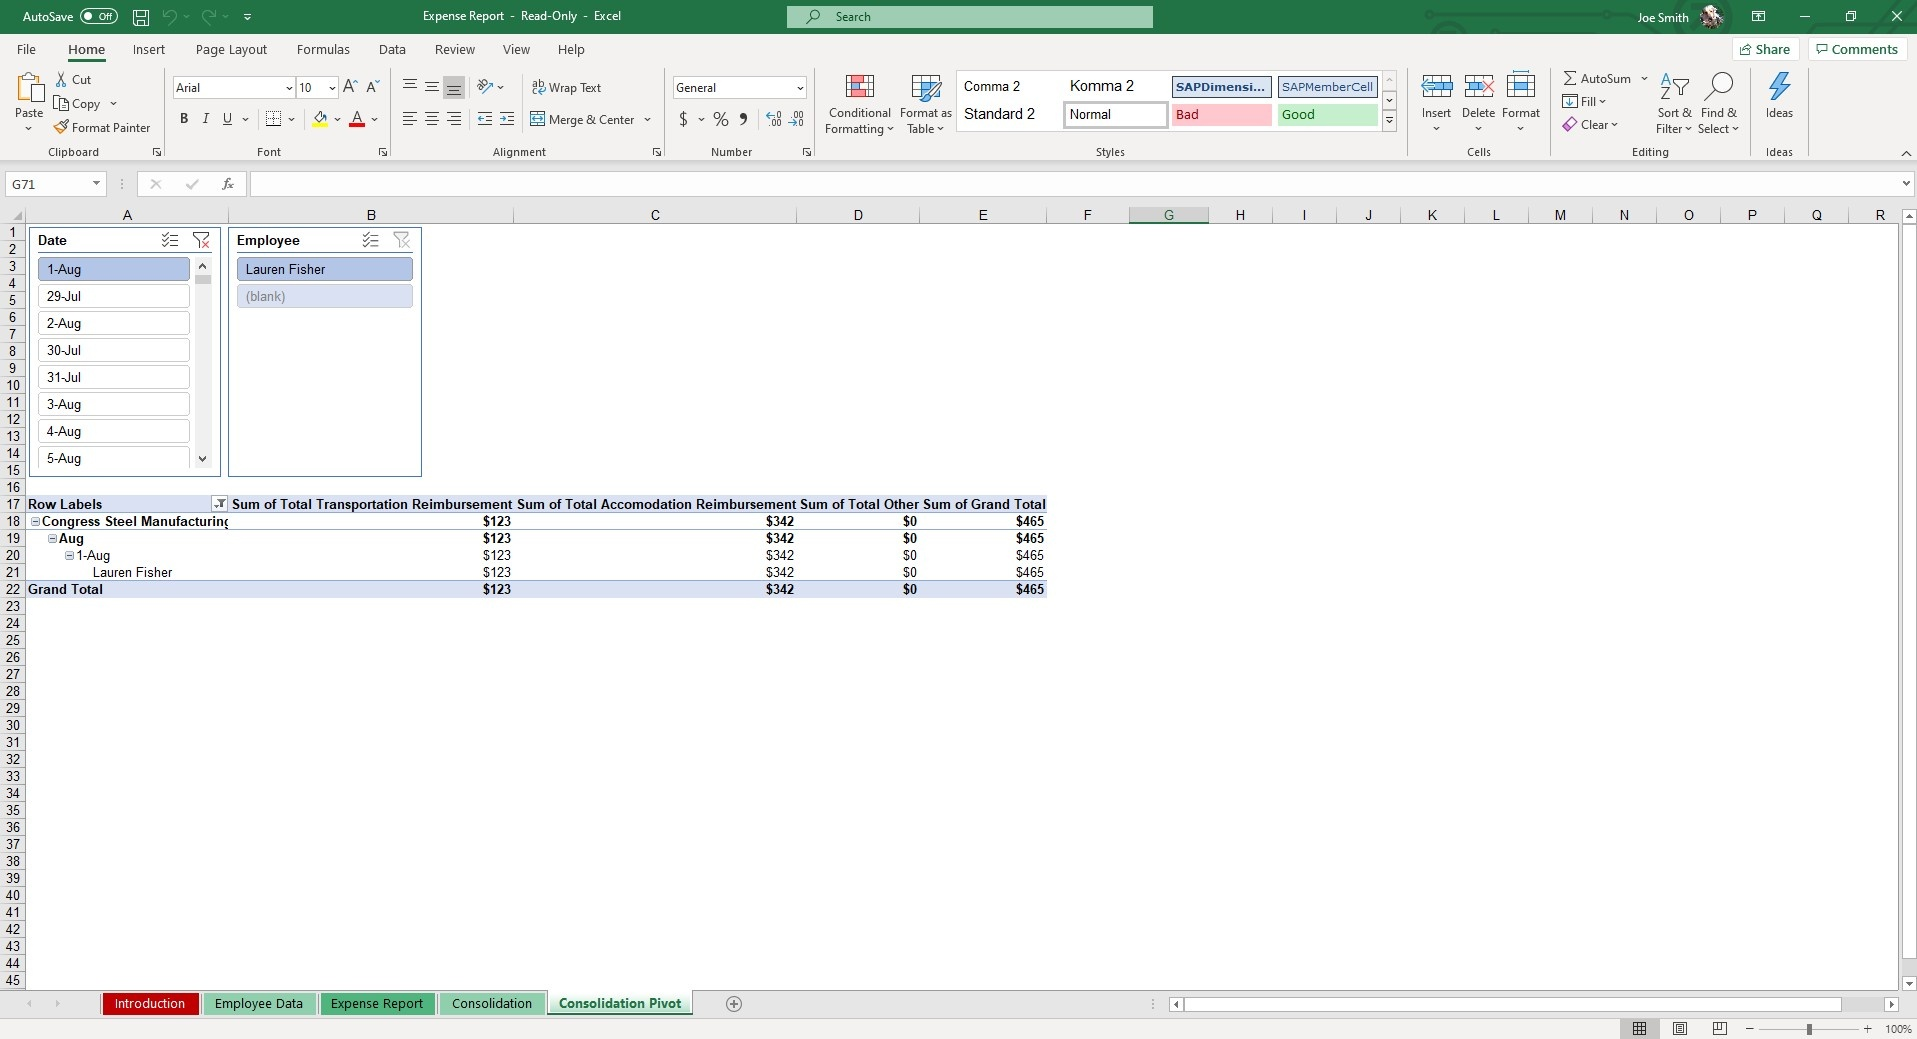 The Consolidation Pivot sheet allows you to segment Expense Reports by Date or Employee for full analysis.